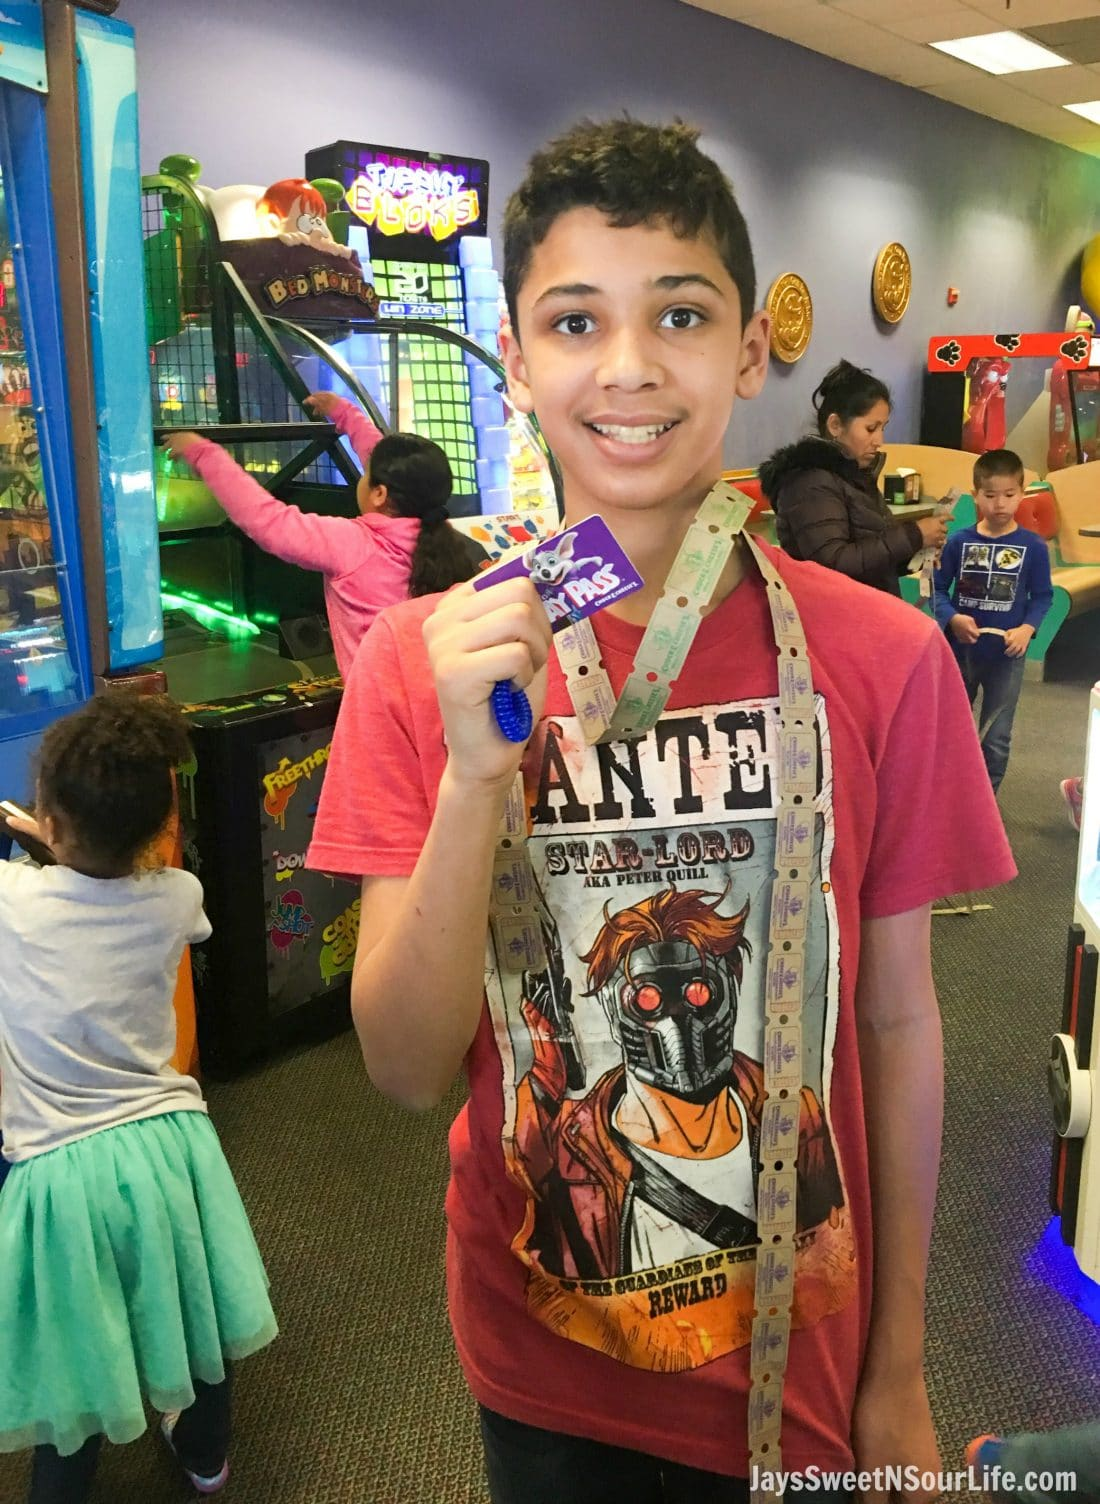 african american boy with tickets and play pass during Chuck e cheeses VIP birthday party. Book your party today and have guests enjoy 2 hours of unlimited game play.